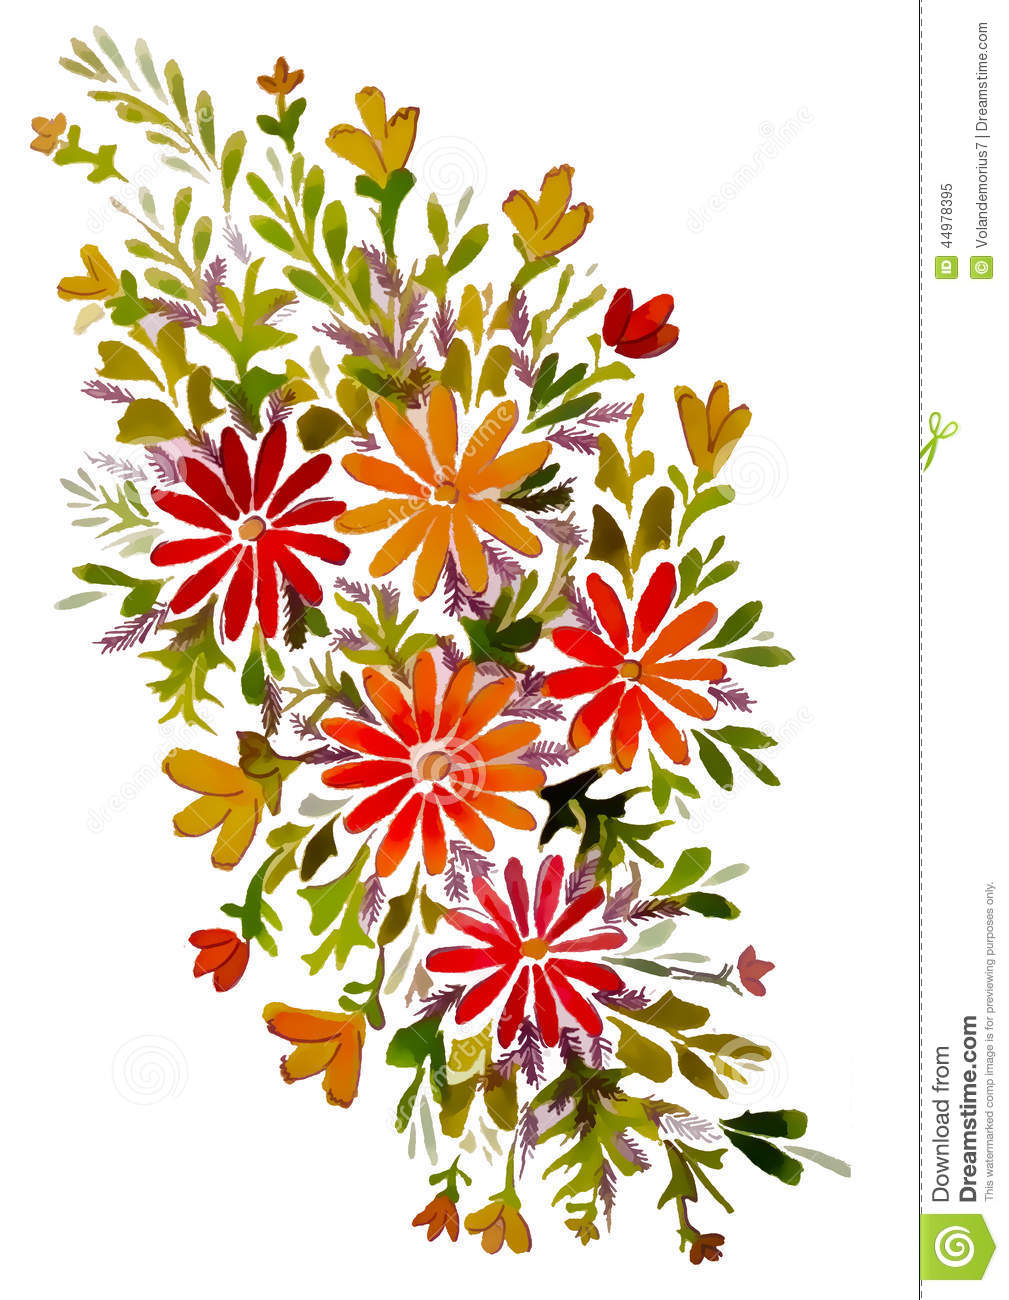 Twig With Flowers Of Different Sizes Stock Illustration.